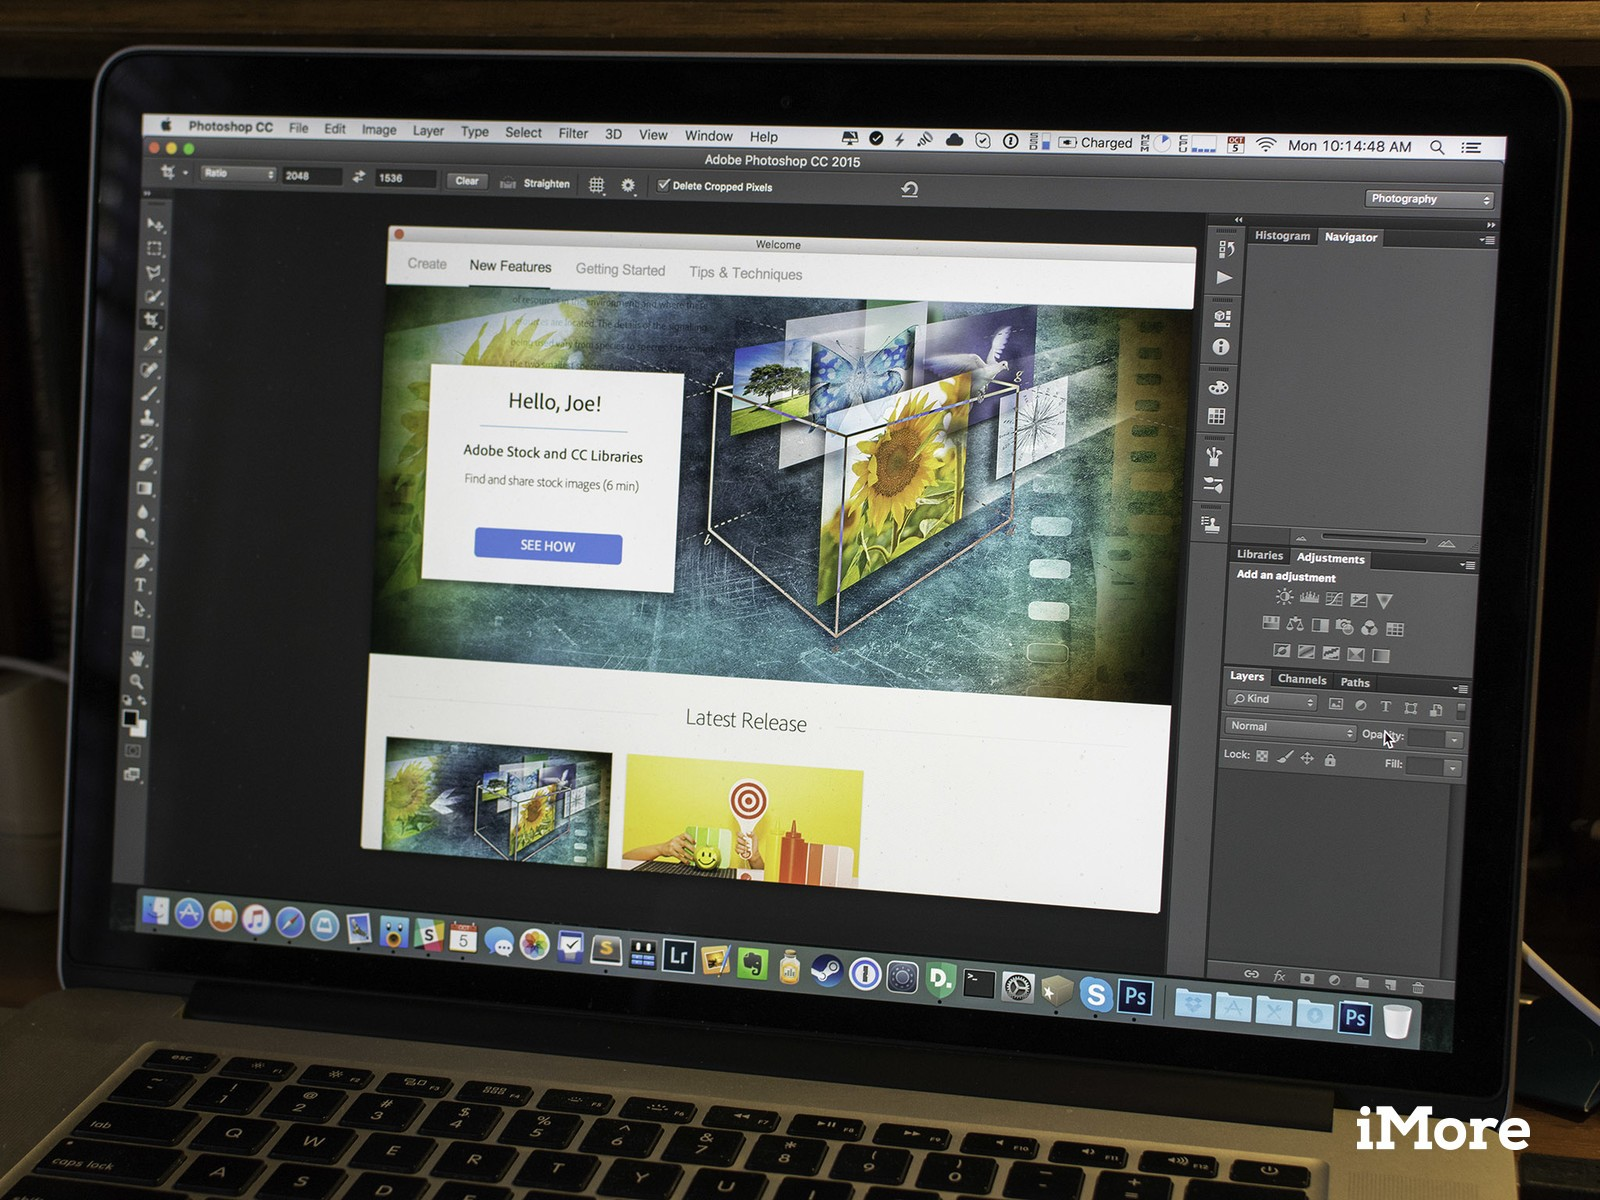 Adobe announces updates to several Creative Cloud desktop apps